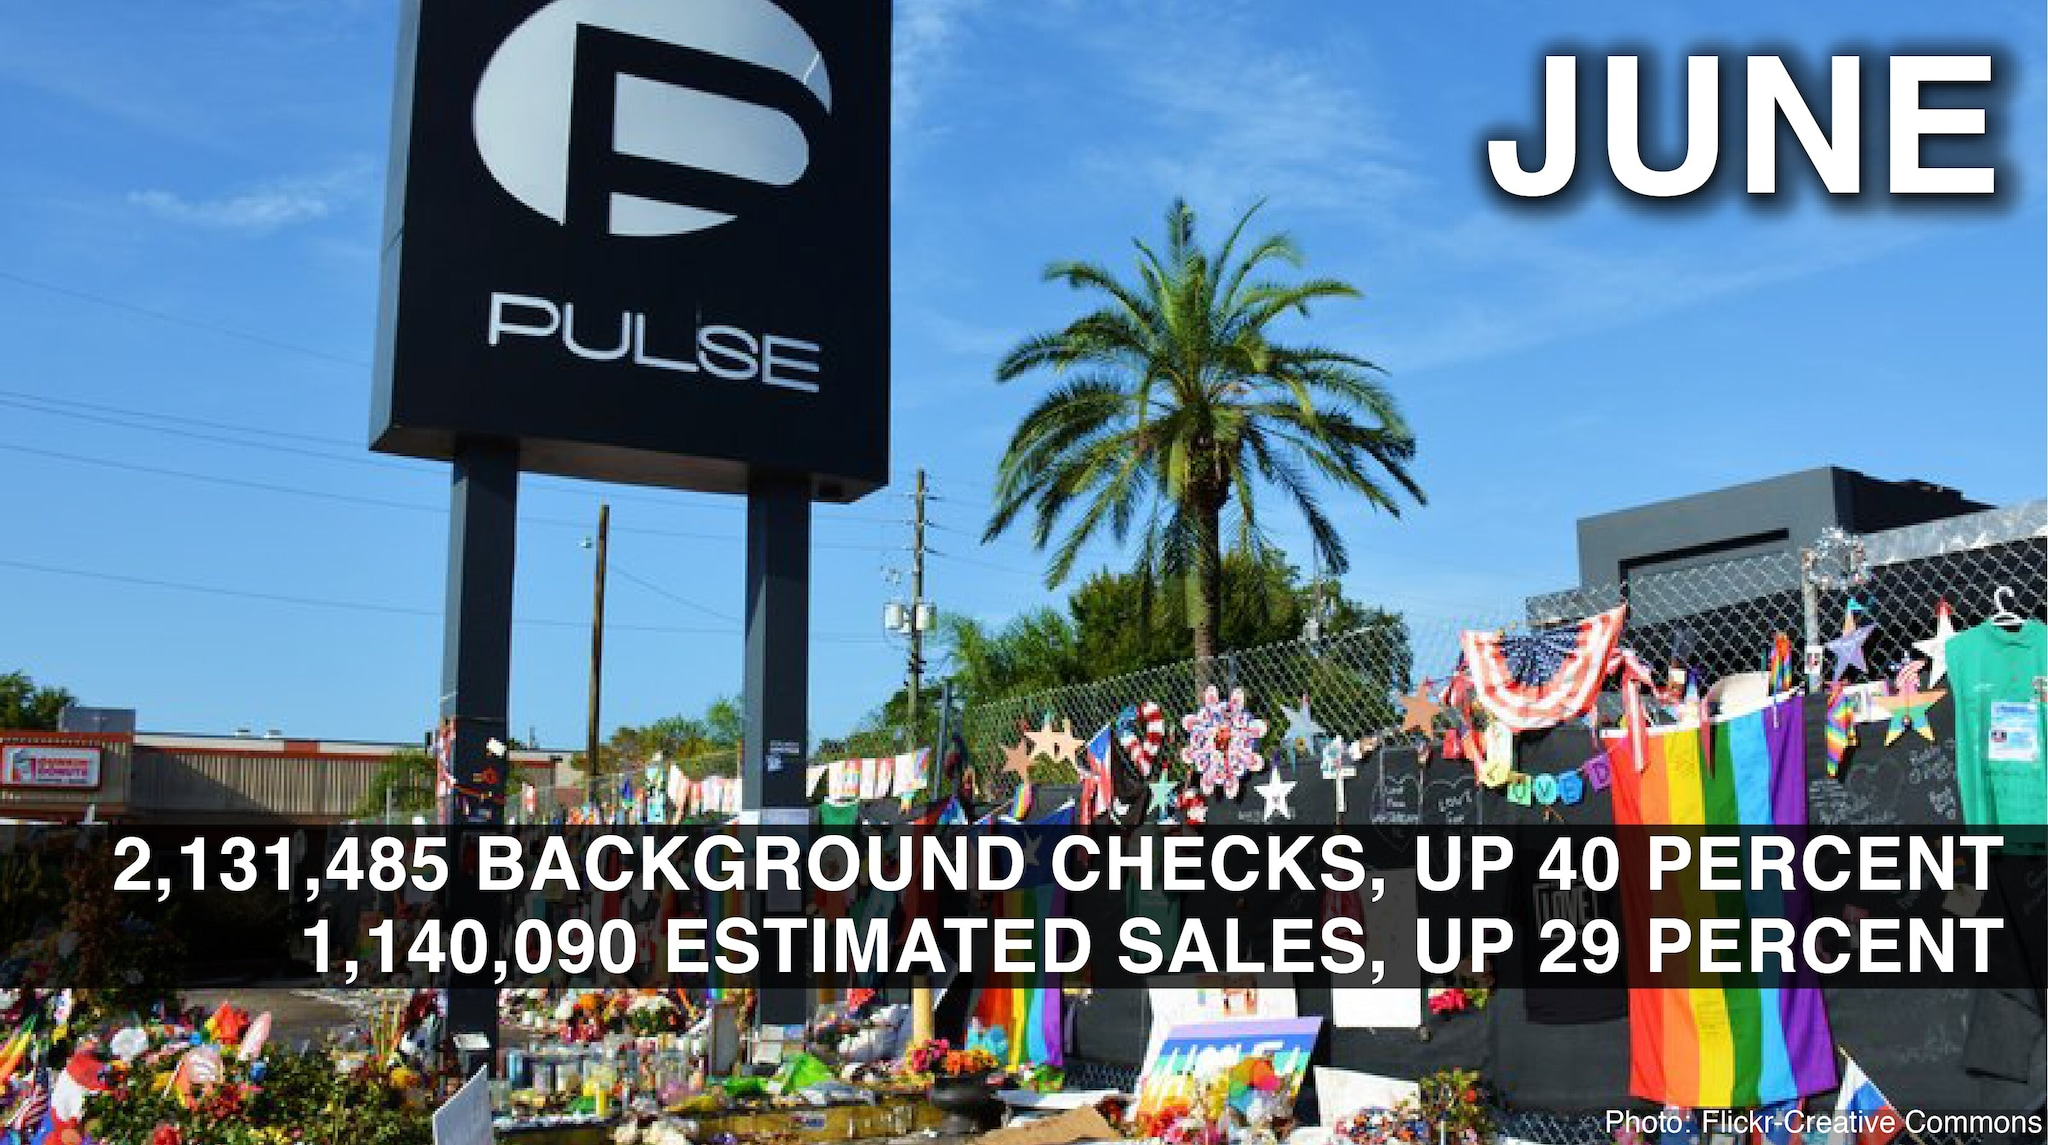 june 2016 background check stats